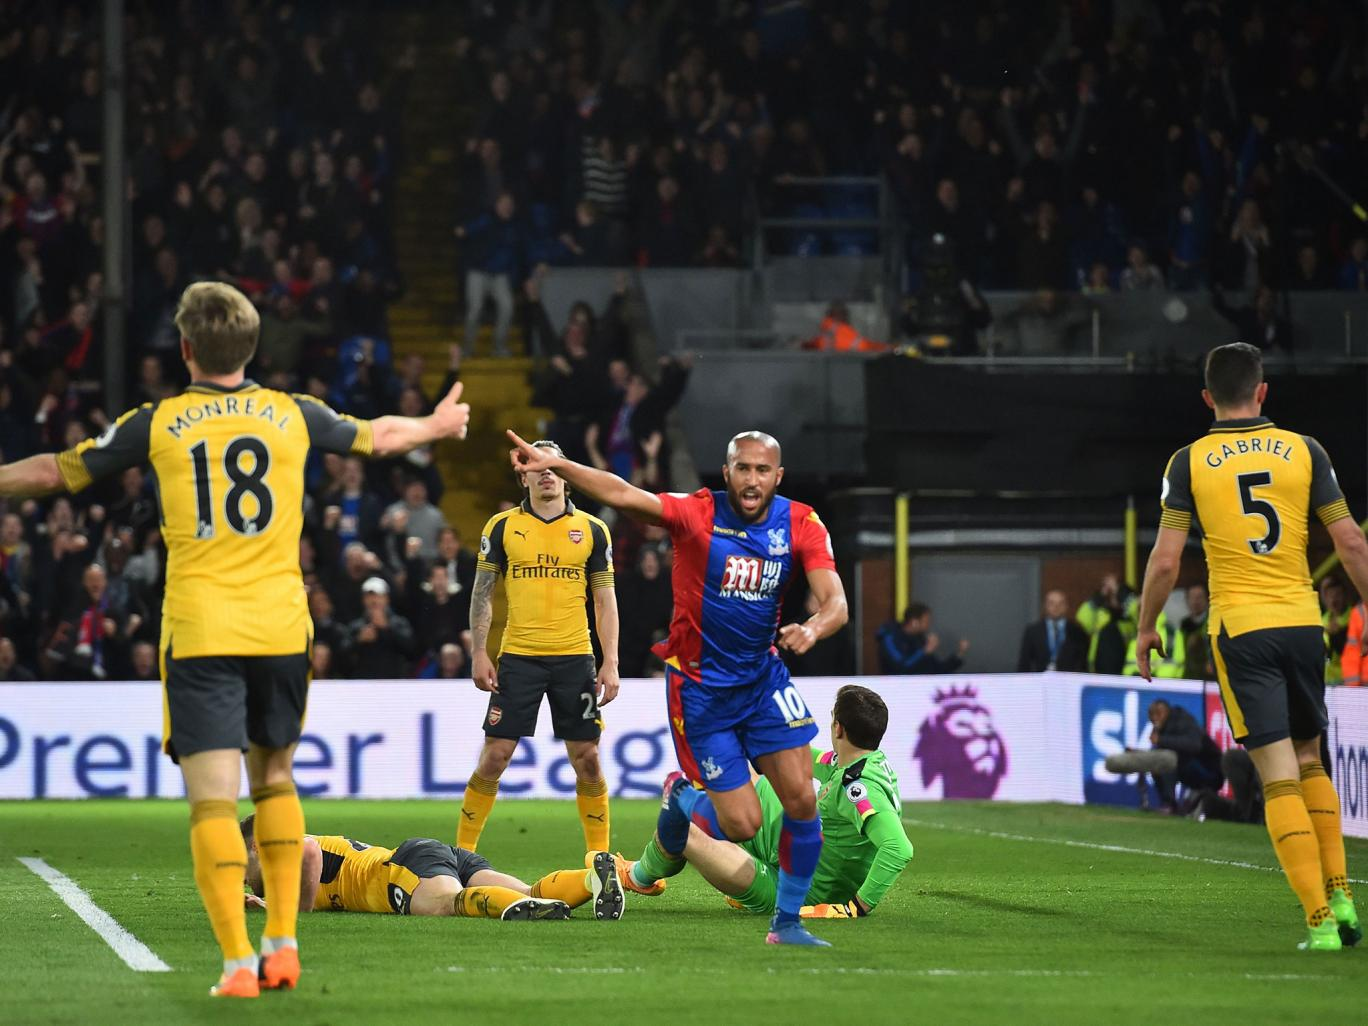 Back to square one for Arsene Wenger as Crystal Palace storm past lifeless and dysfunctional Arsenal